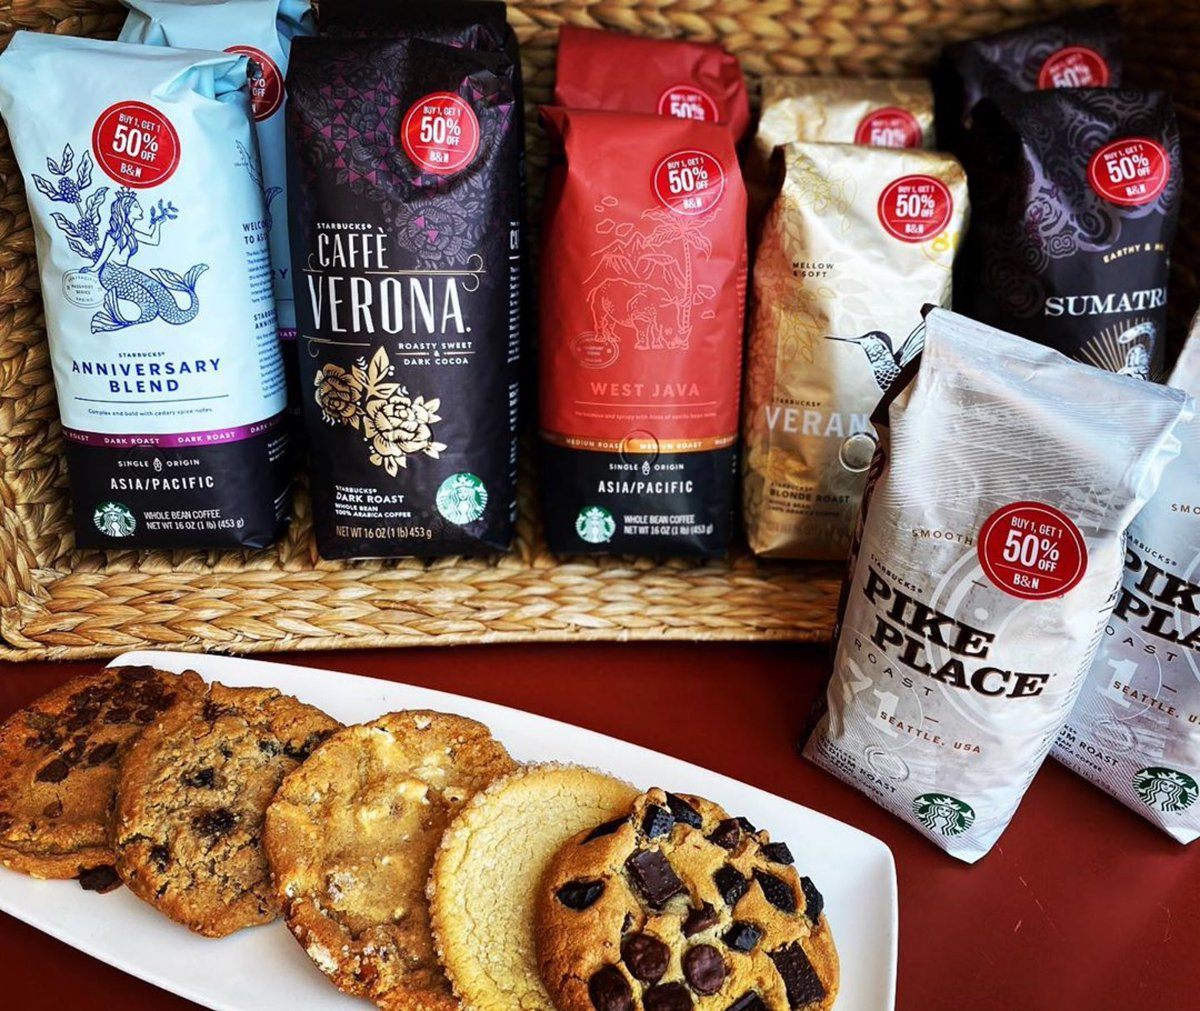 Who can resist BOGO50% ??? Stock up on your favorite @starbucks bagged #coffees AND @sweetstreetdesserts #cookies. 🍪☕️ Use our #BNCafeApp to #SkipTheLine and have your handcrafted beverages waiting for you when you get here to #LeaveMoreTimeForBooks 😉📚😉 📸: #bnnorthlittlerock https://t.co/BUE55TnzVe